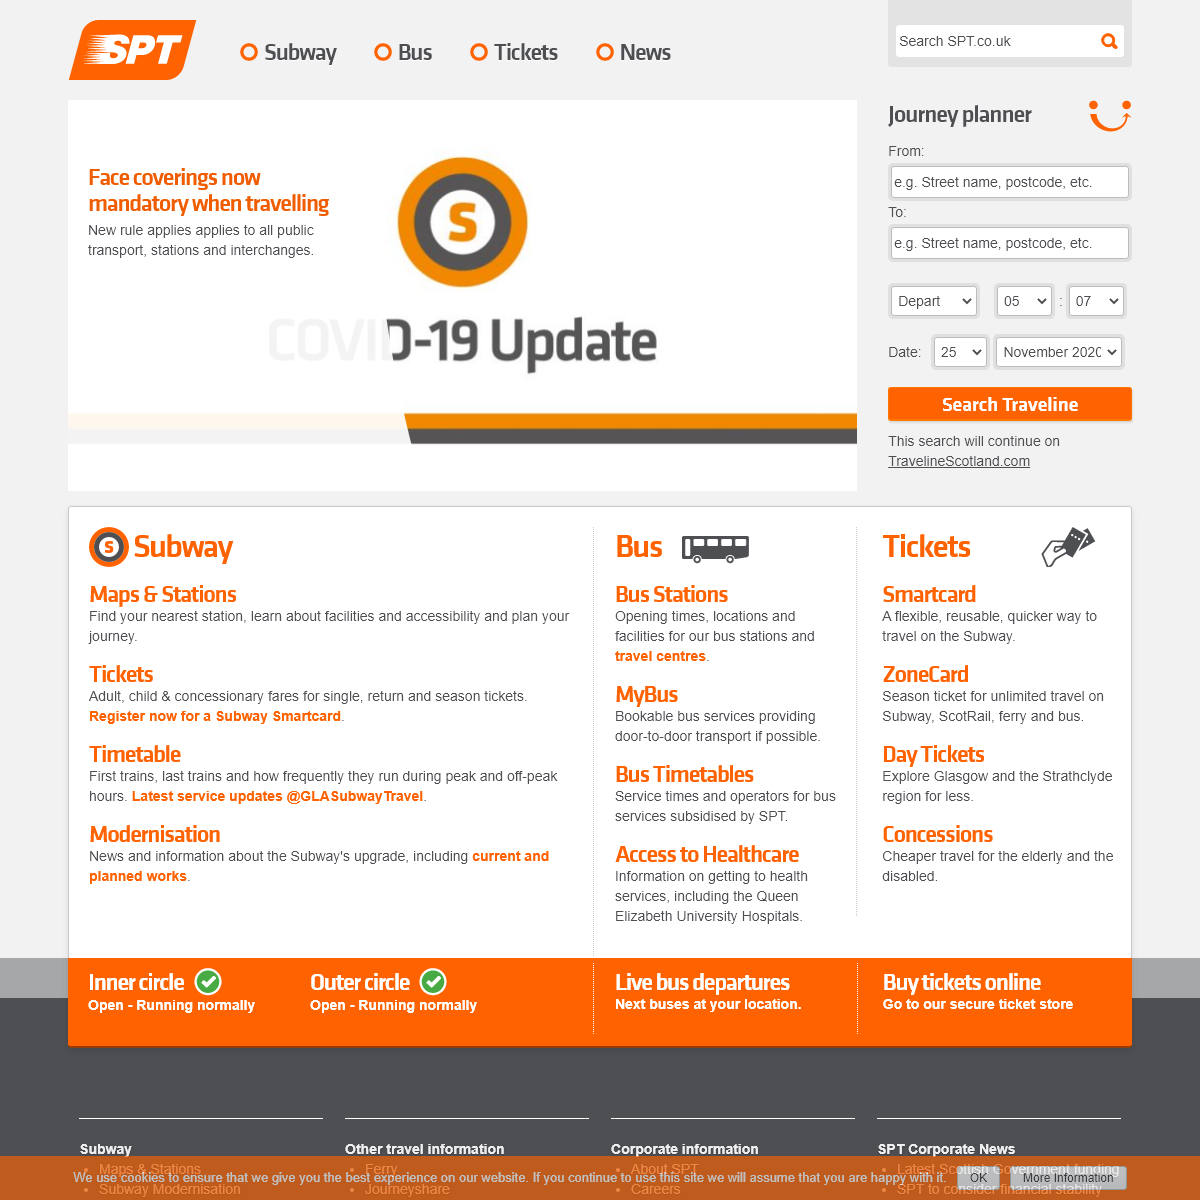 SPT - Glasgow Subway, Bus and Ticket information